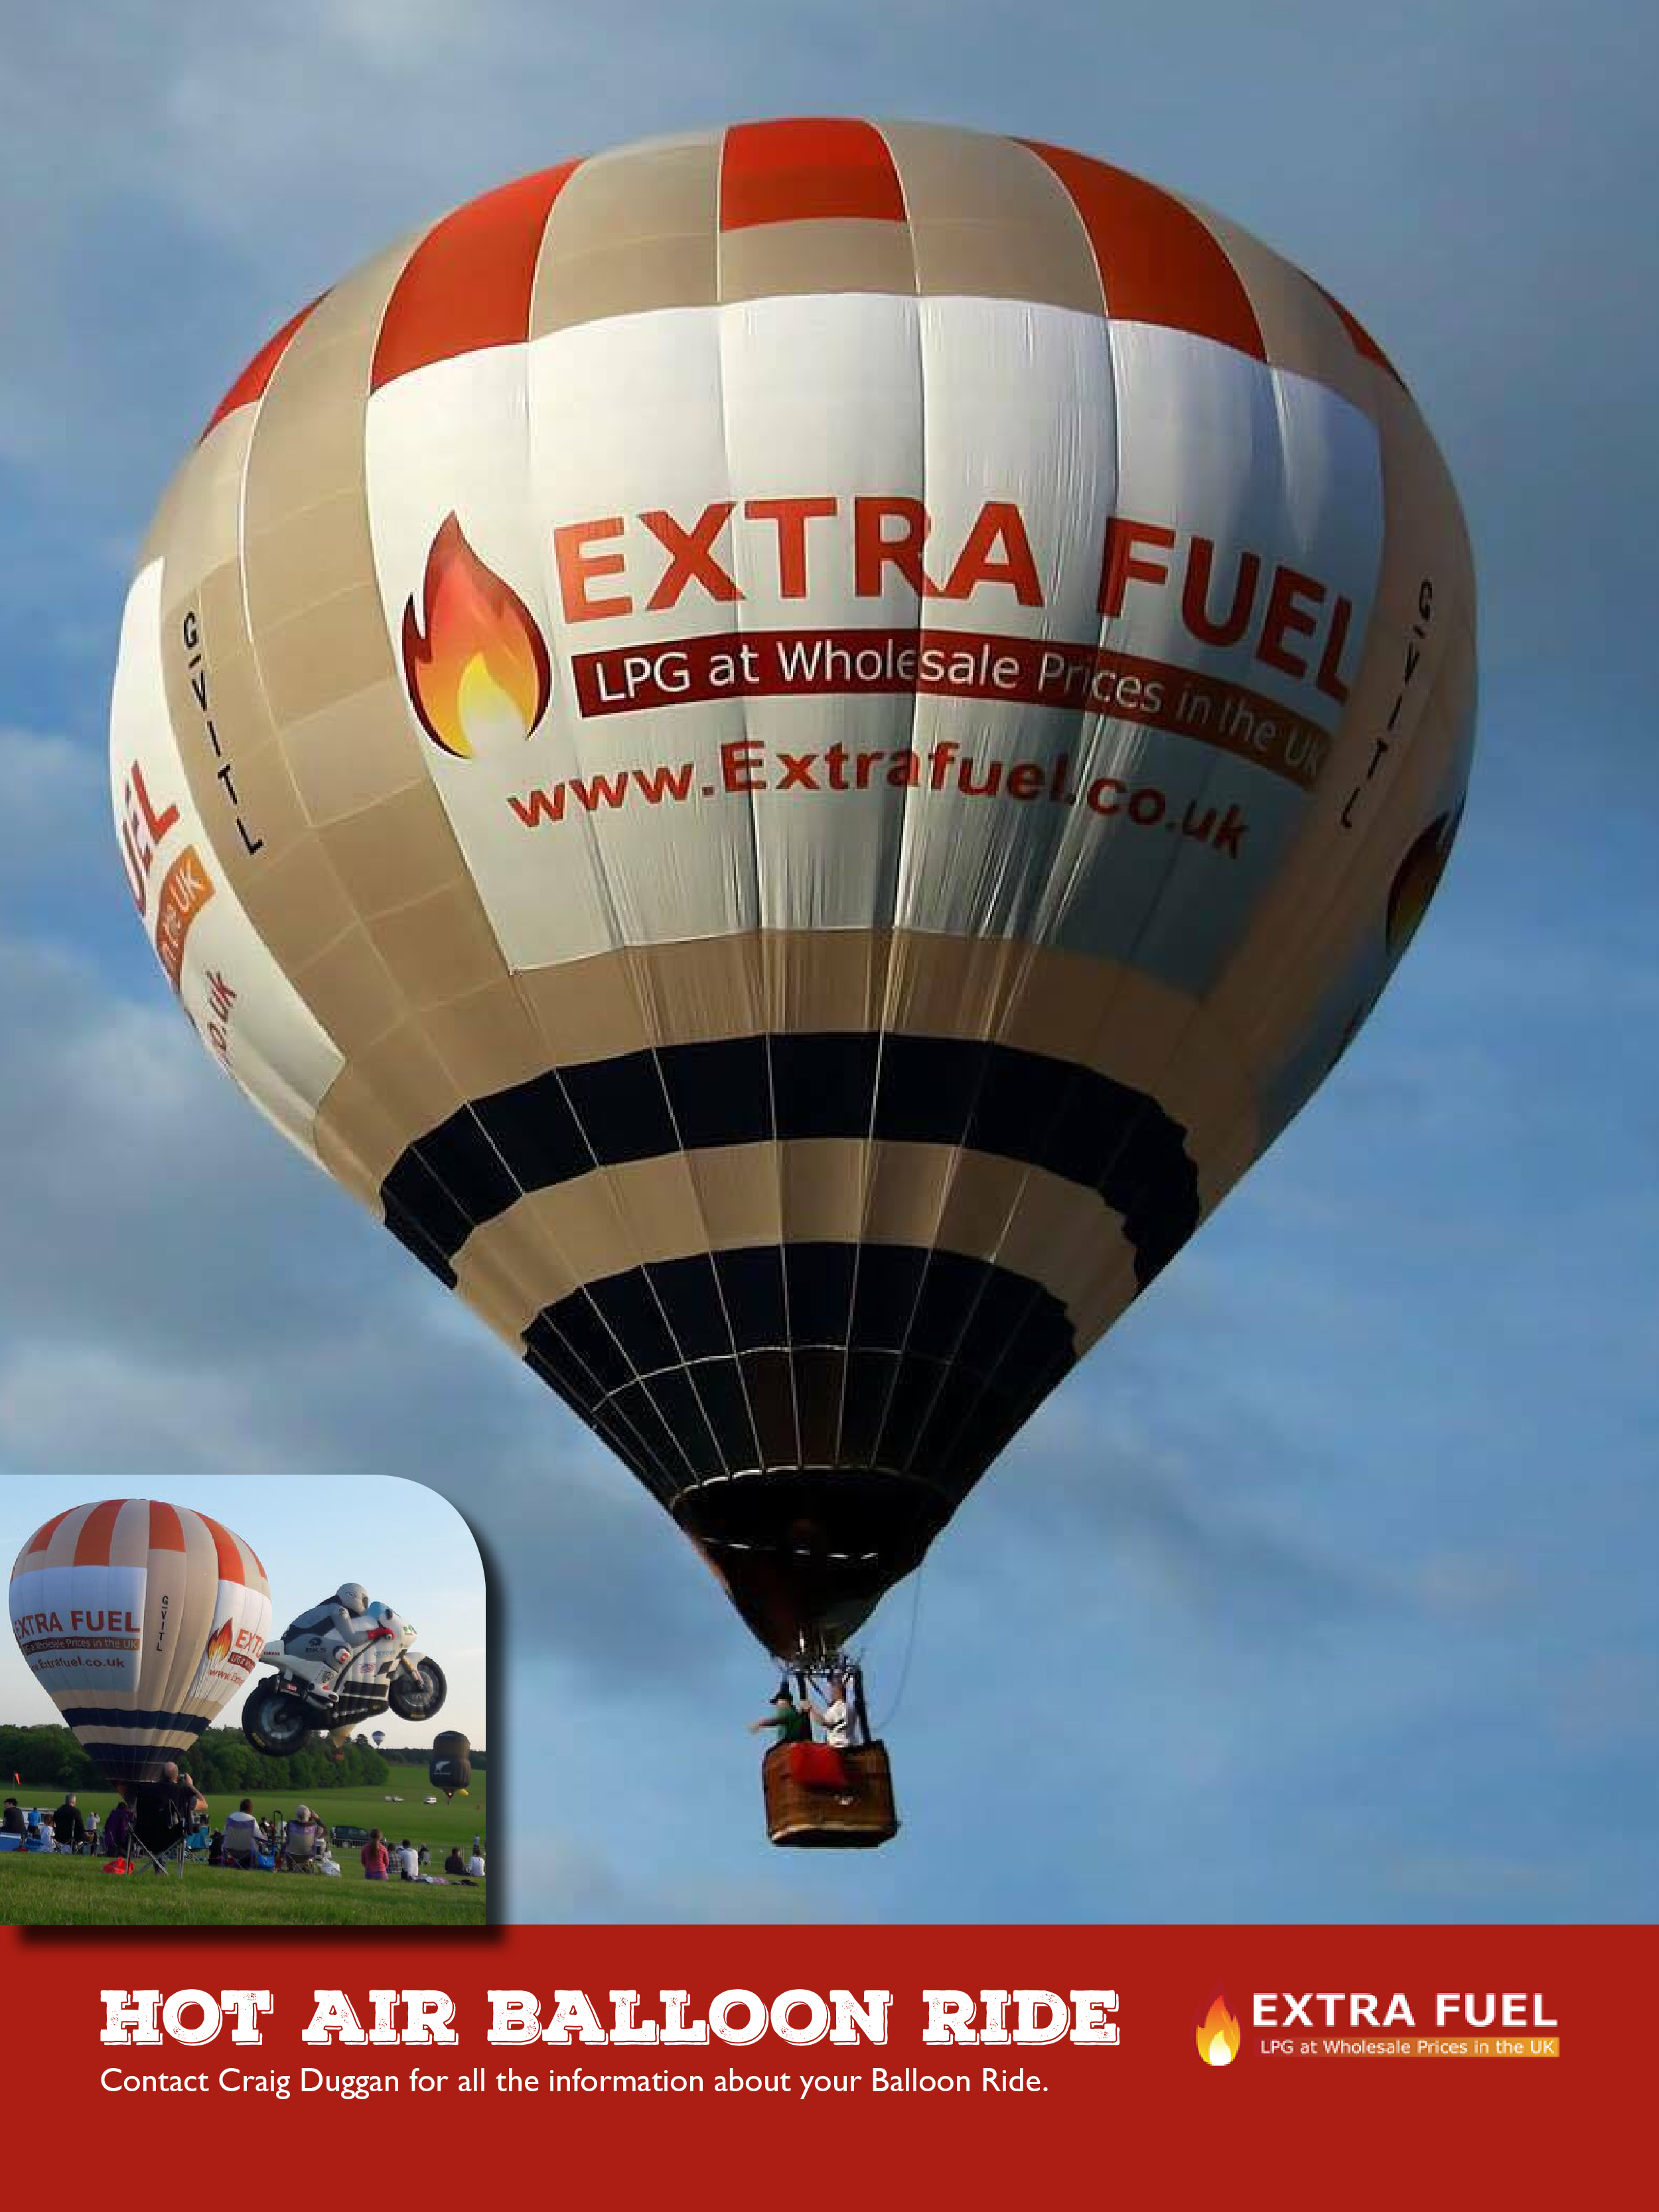 LOT 4   A hot air balloon ride A fabulous flight across North Yorkshire with the Extra Fuel Hot air balloon Team  Prize donated by Extra Fuel Hot air balloon team   Current Bid £200